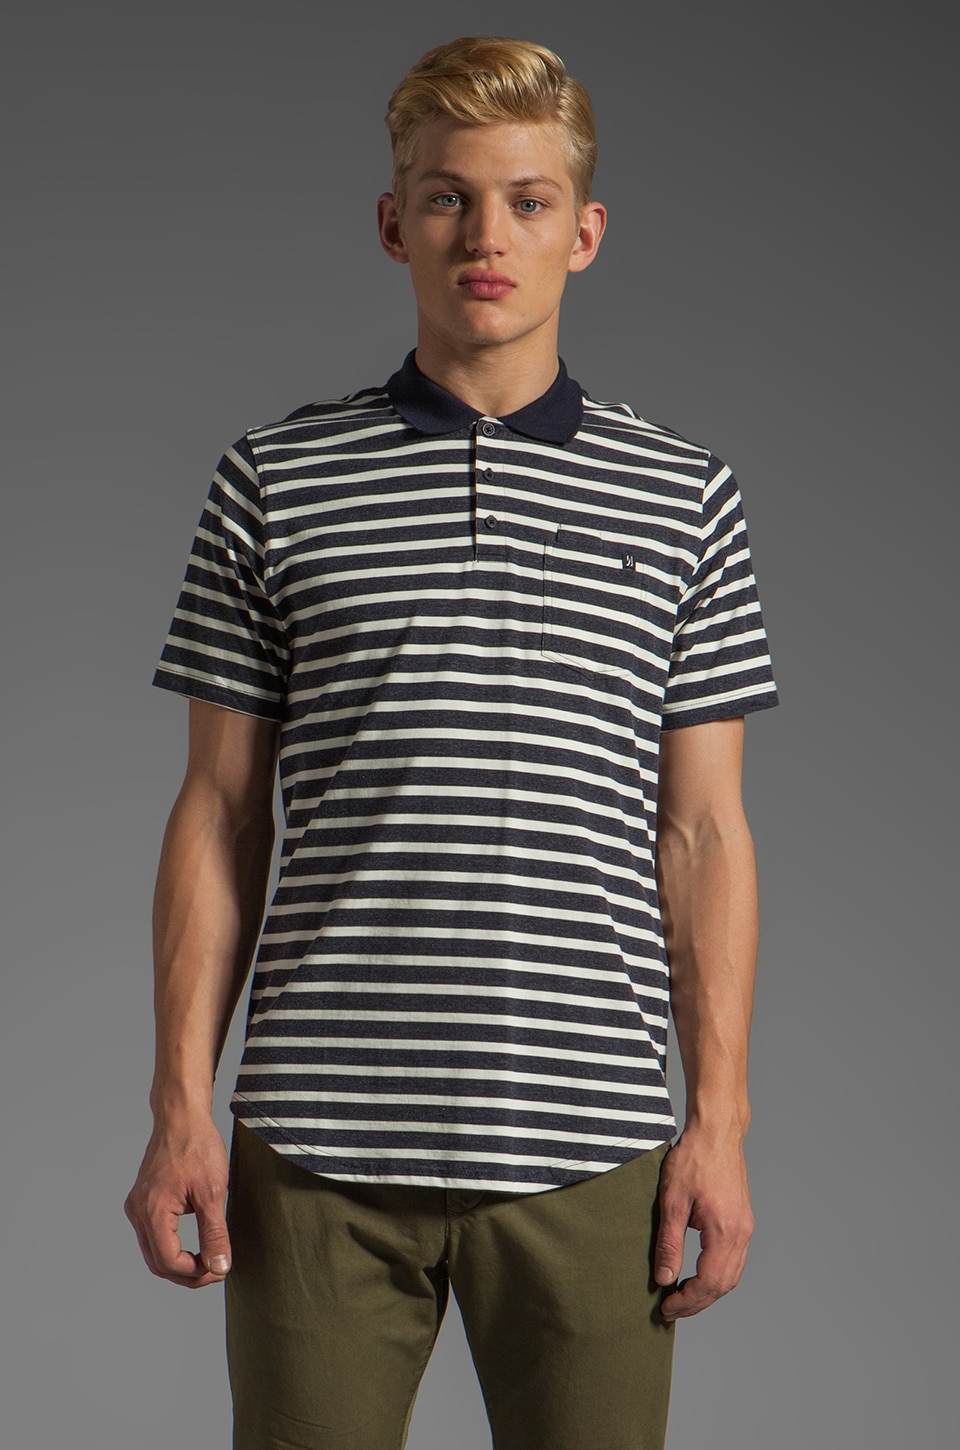 COMUNE CS Tyler Polo in Navy Stripe